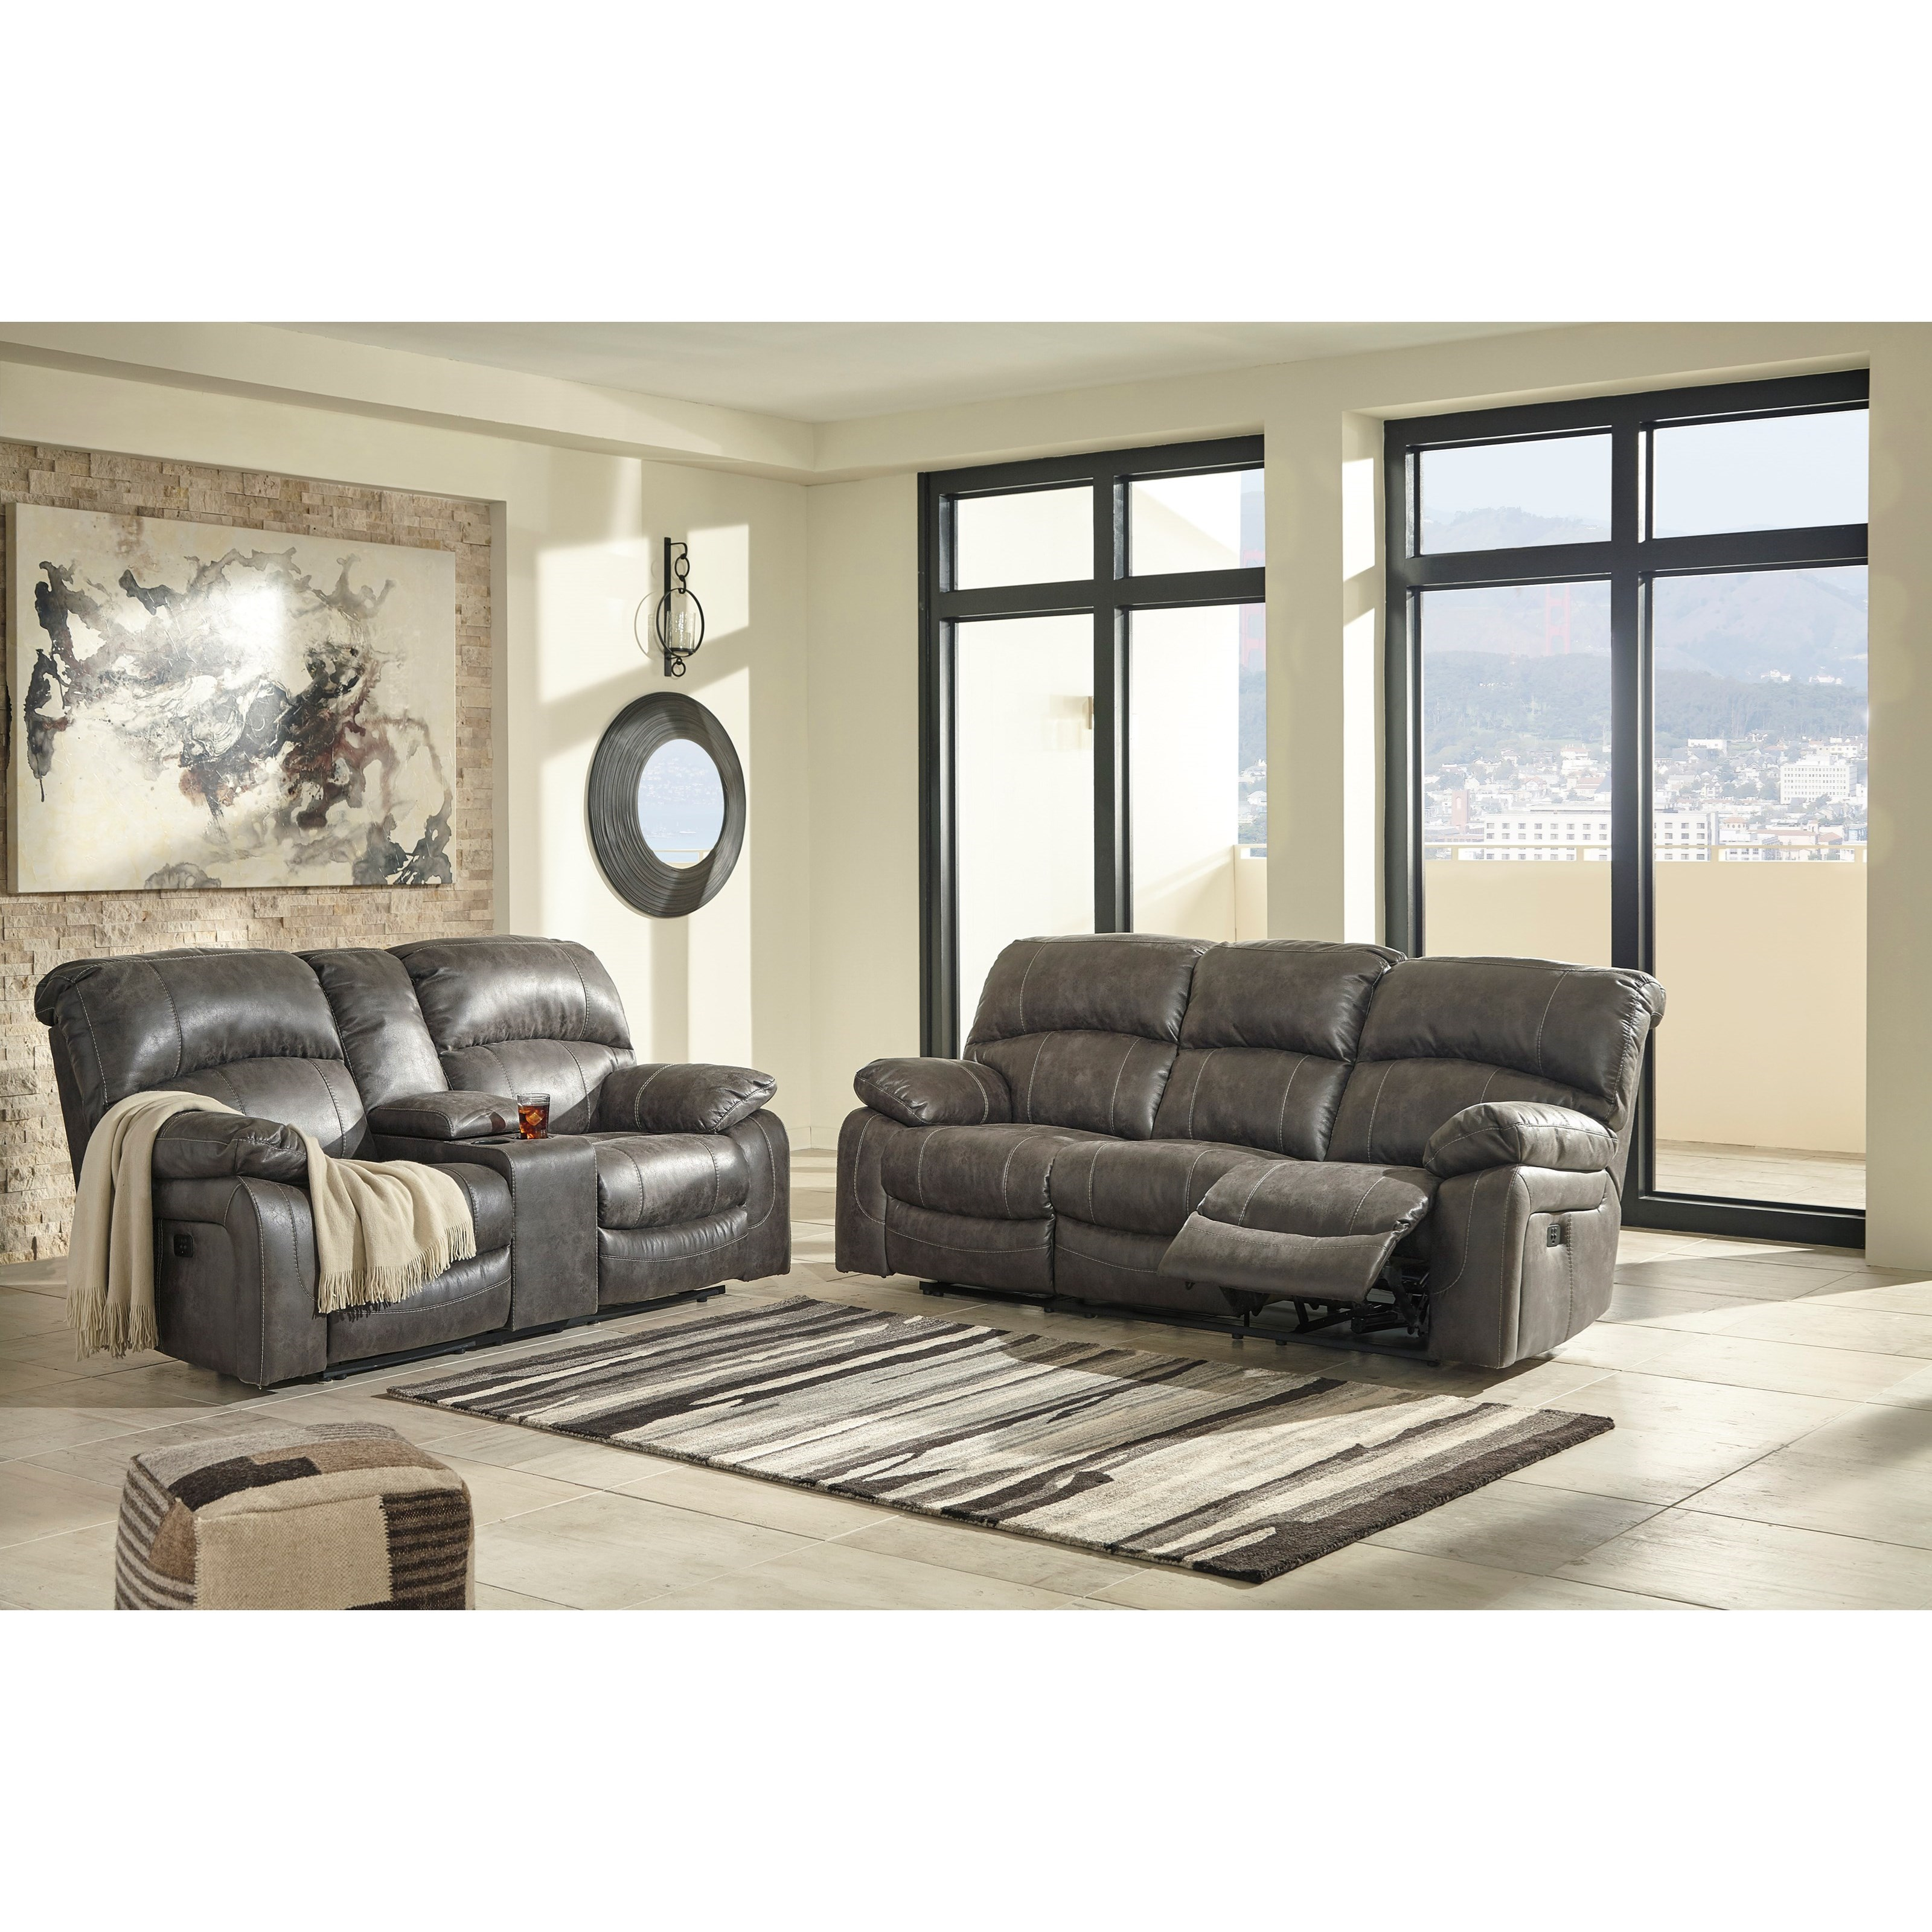 Dunwell Reclining Living Room Group by Signature Design by Ashley at Northeast Factory Direct